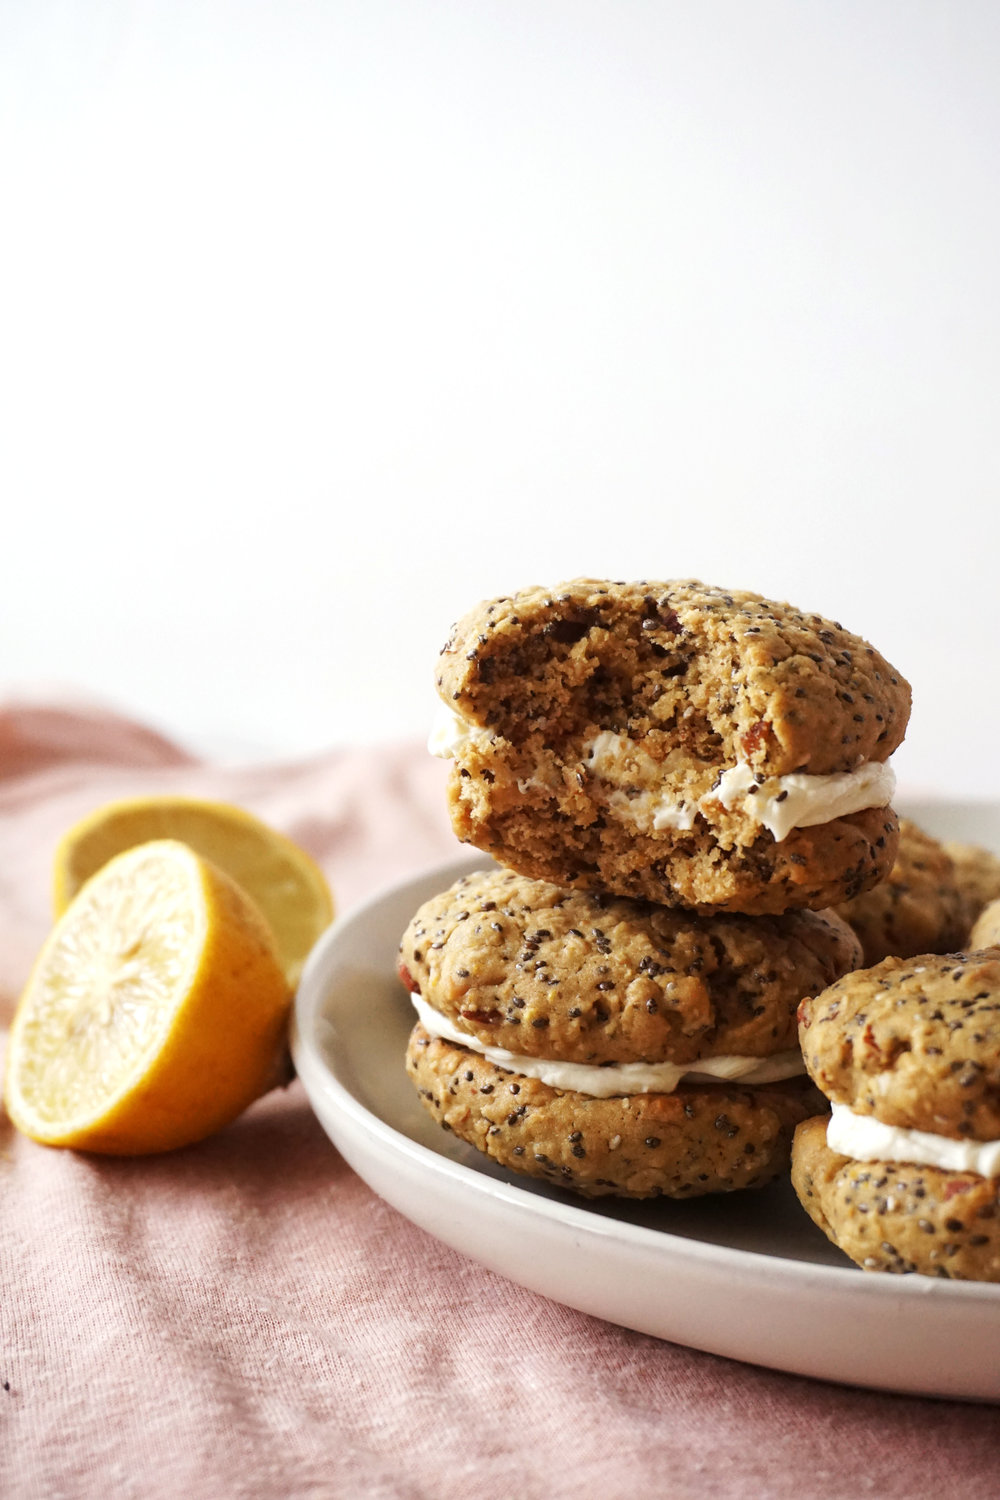 Lemon Chia Seed Oatmeal Cookie Sandwiches (GF)